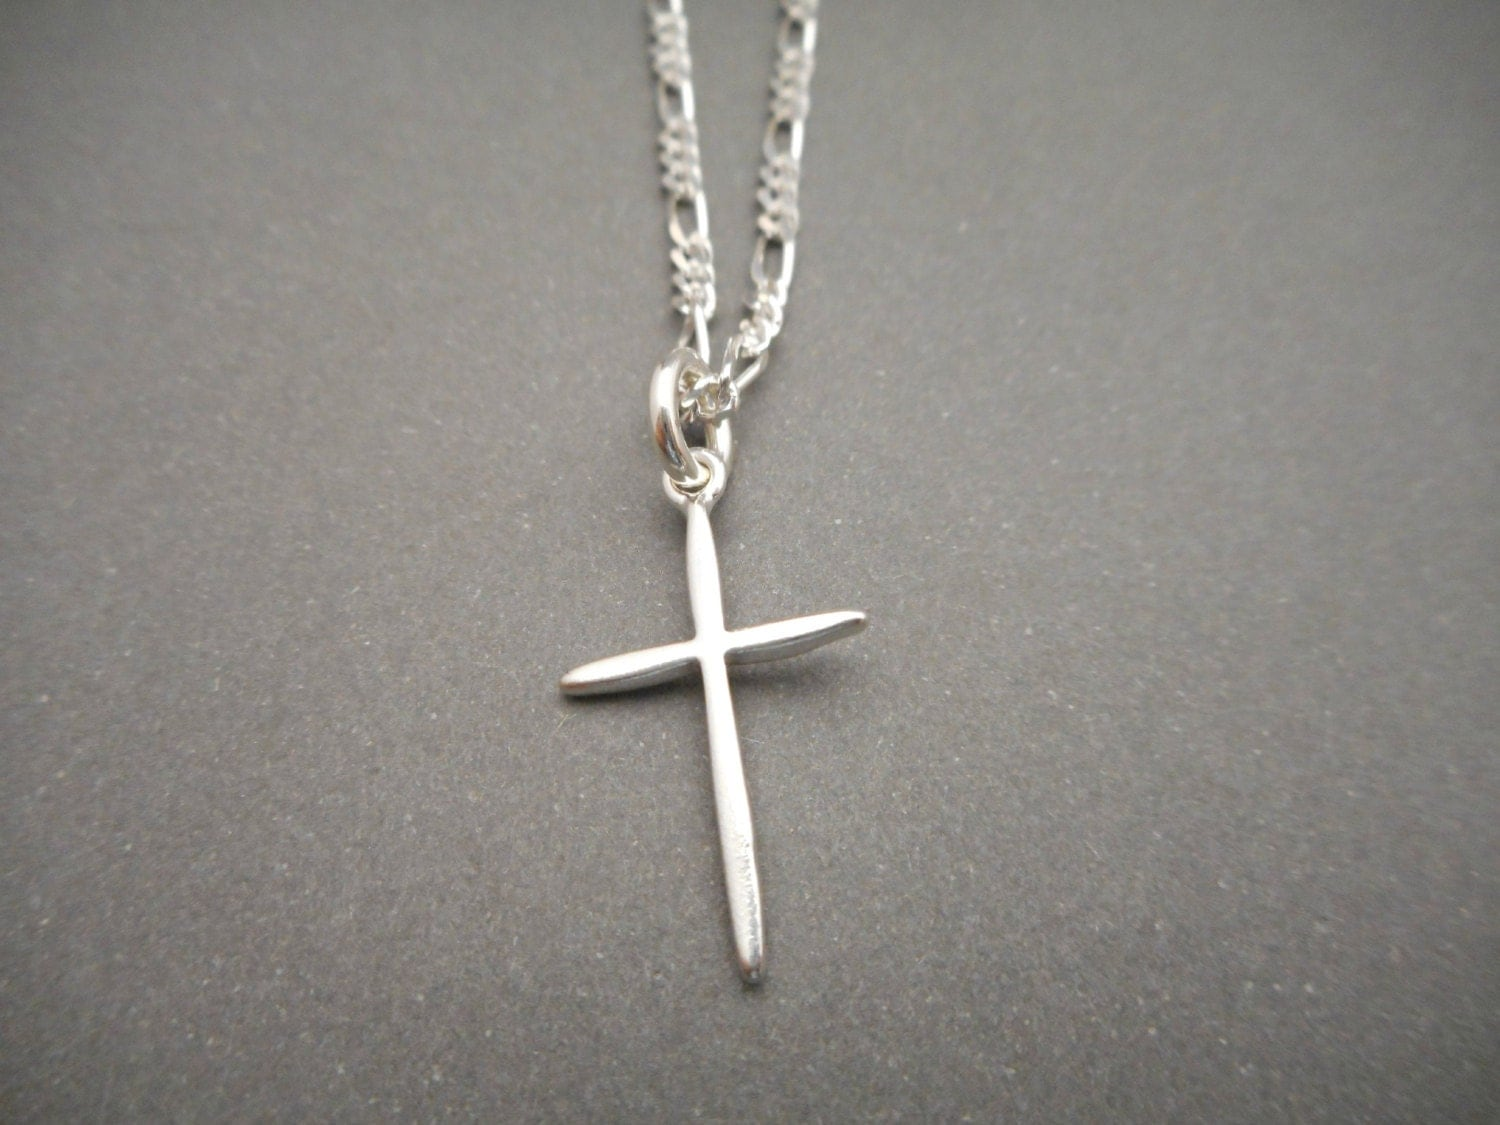 sterling silver cross necklace mens jewelry religious gift. Black Bedroom Furniture Sets. Home Design Ideas